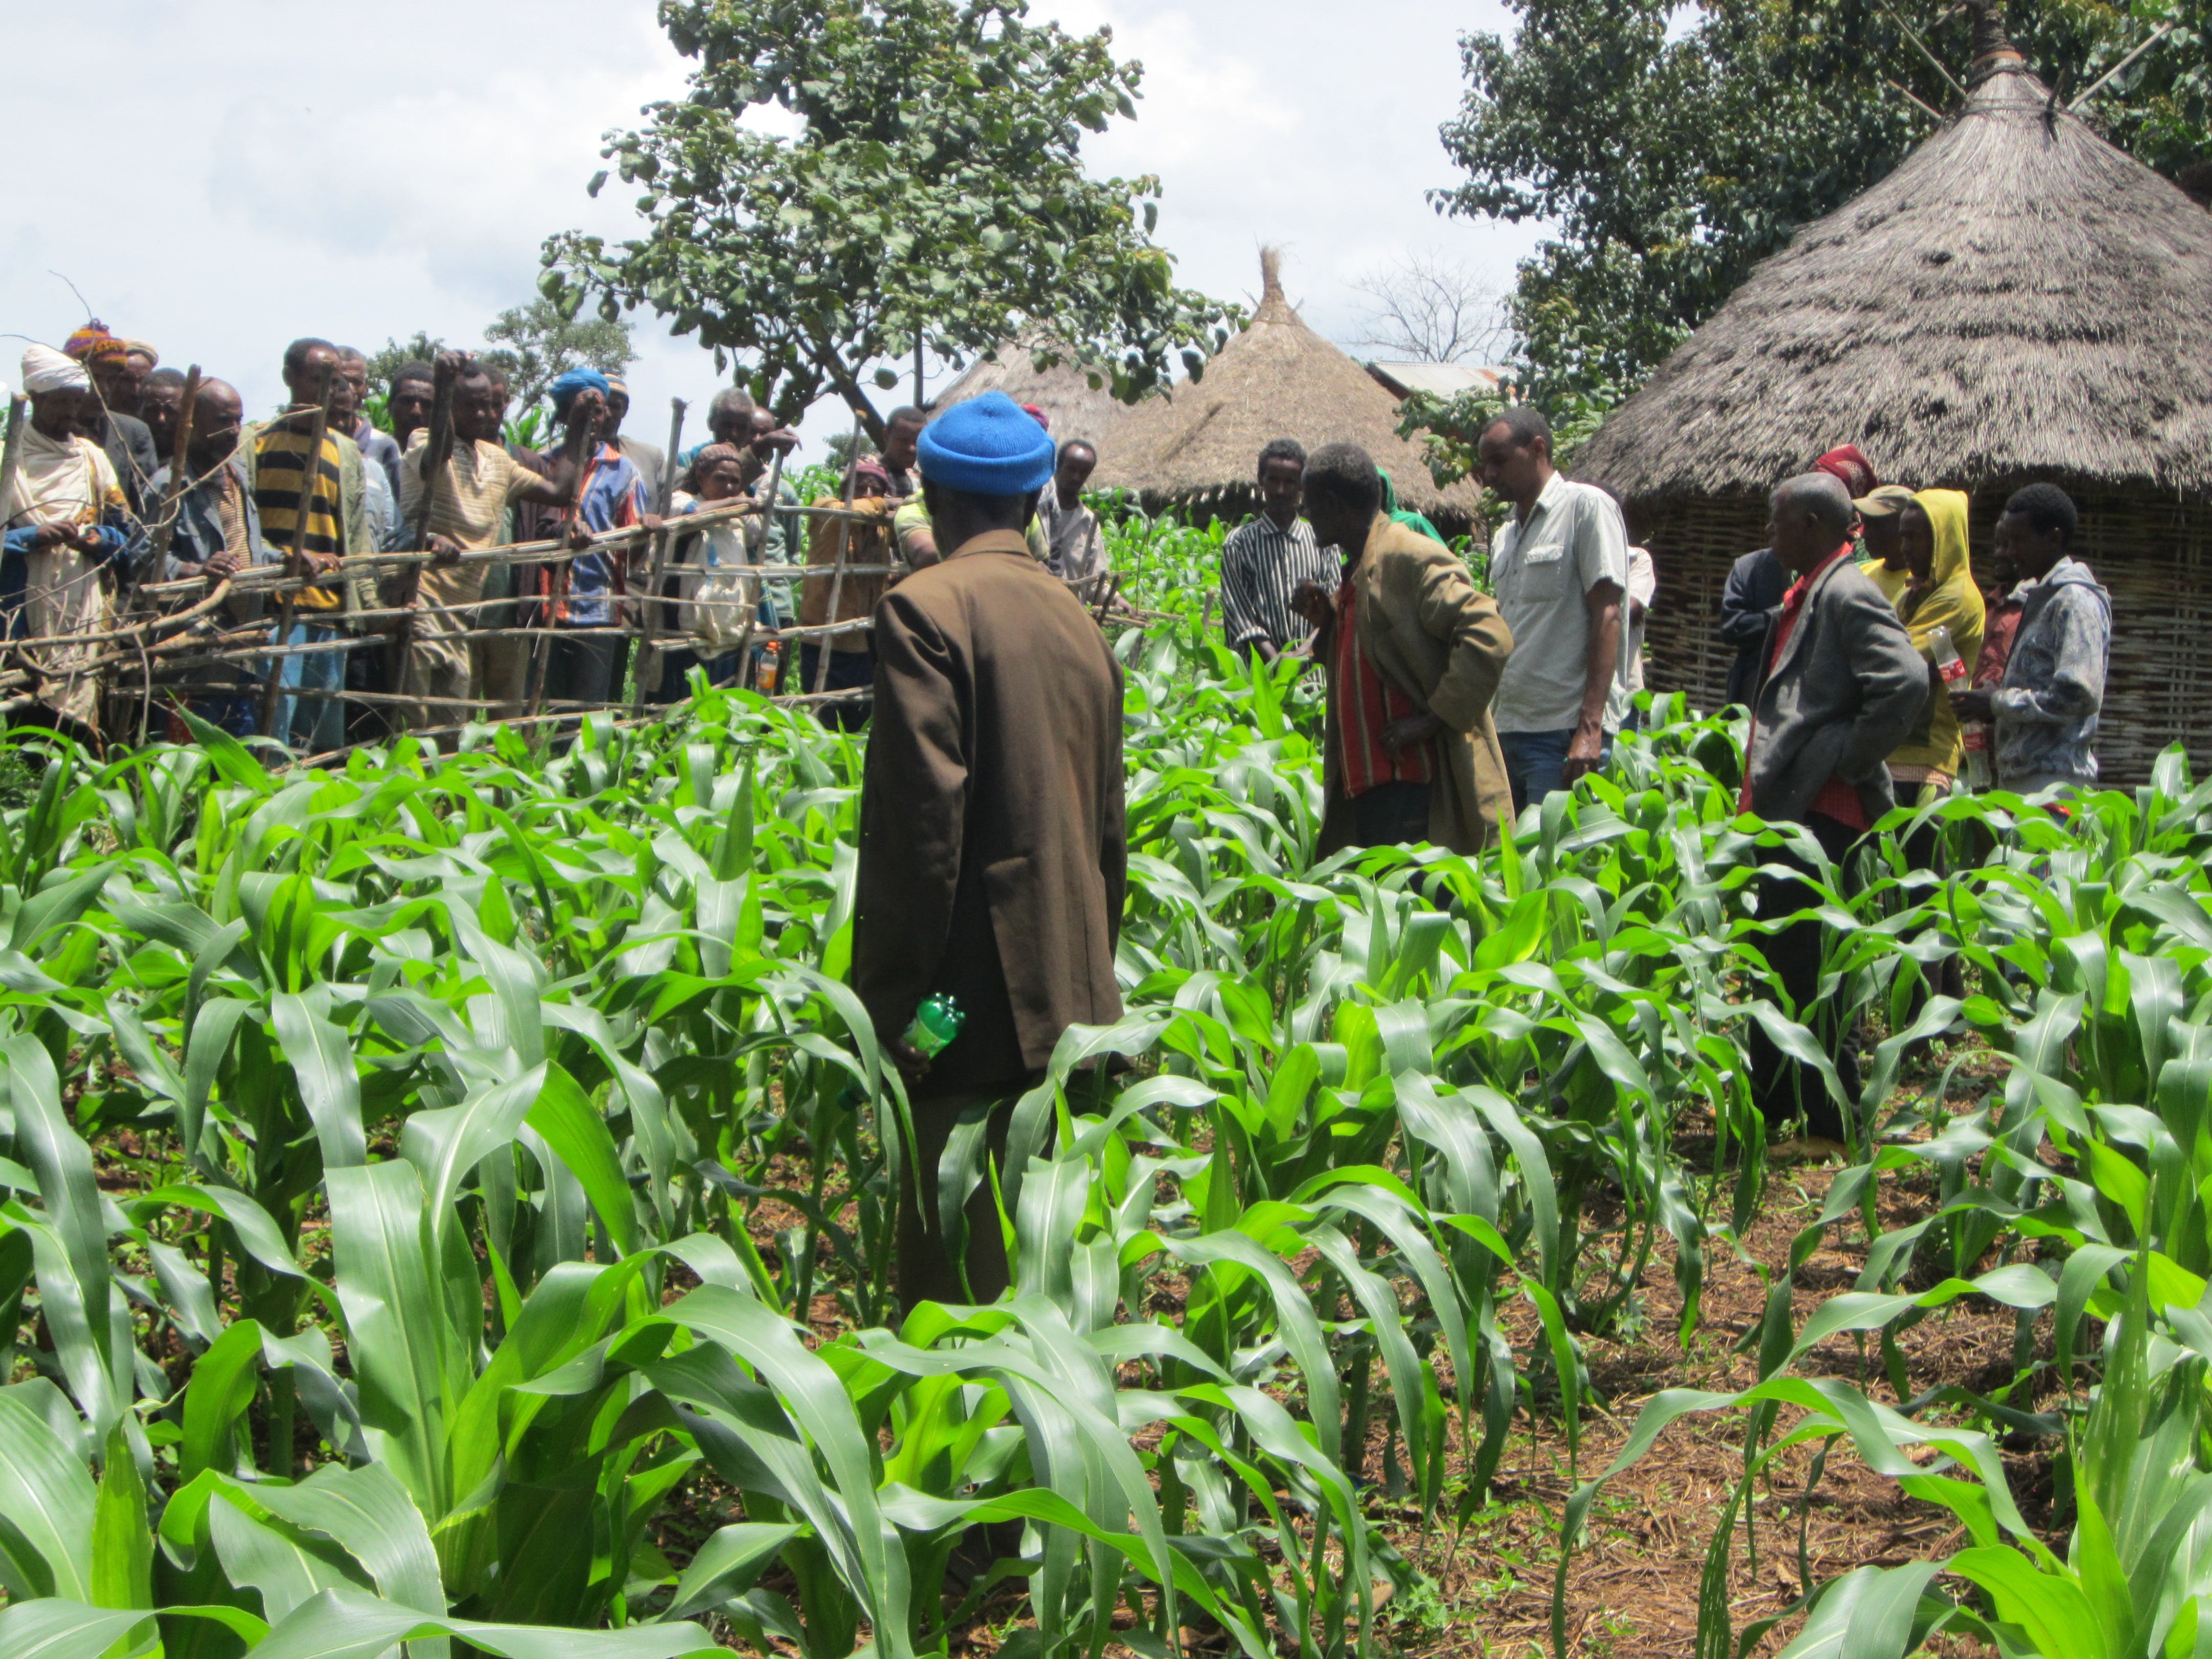 Abdela and his community members walk through his farm.